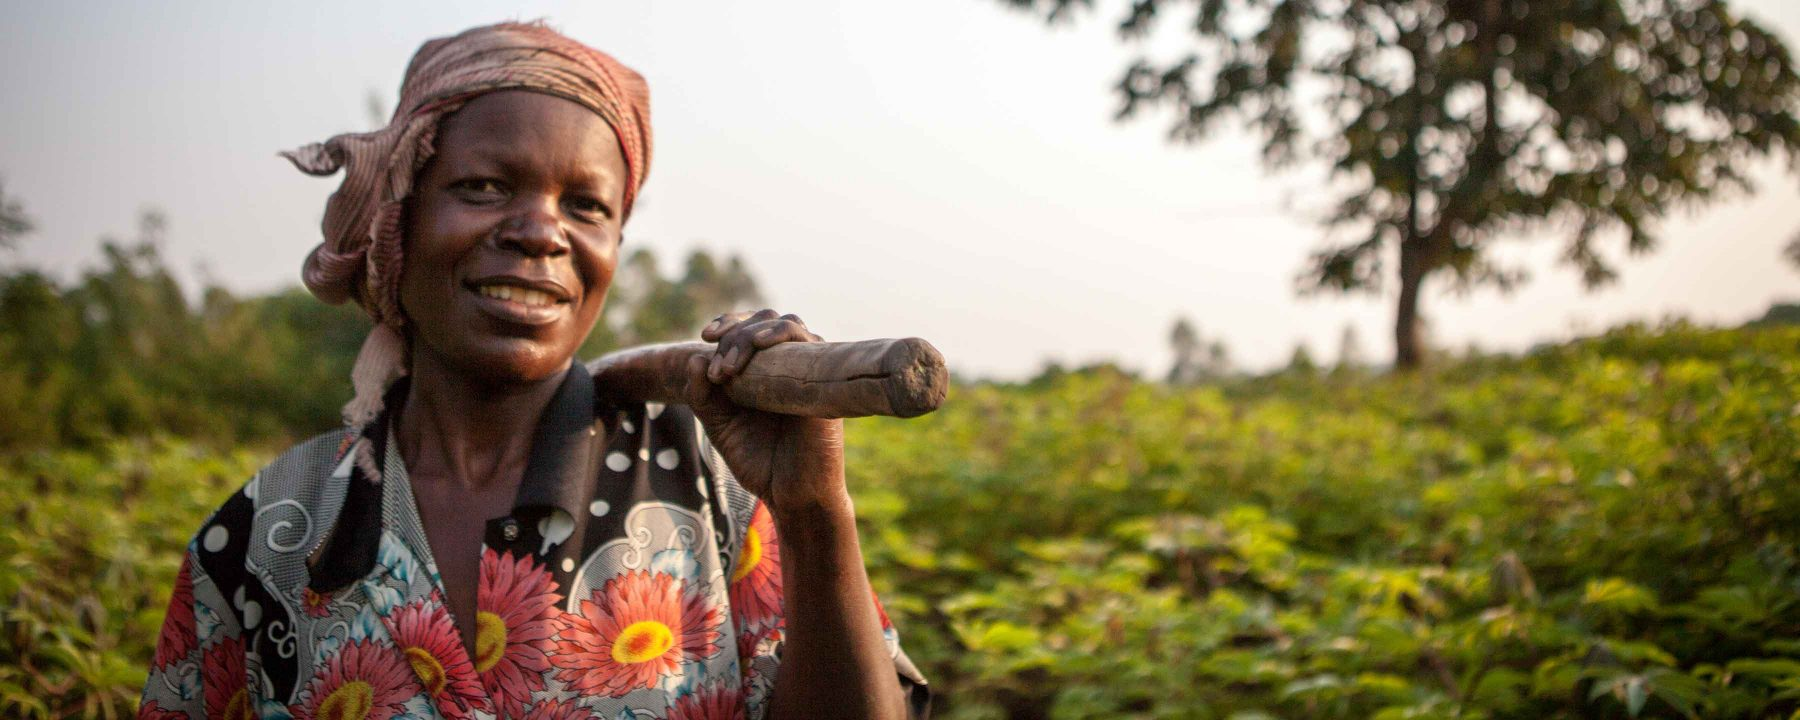 Jane Rose Madoba, who lives in Busia, Uganda, received technical assistance to help improve her production through the USAID Farmer-to-Farmer Program.